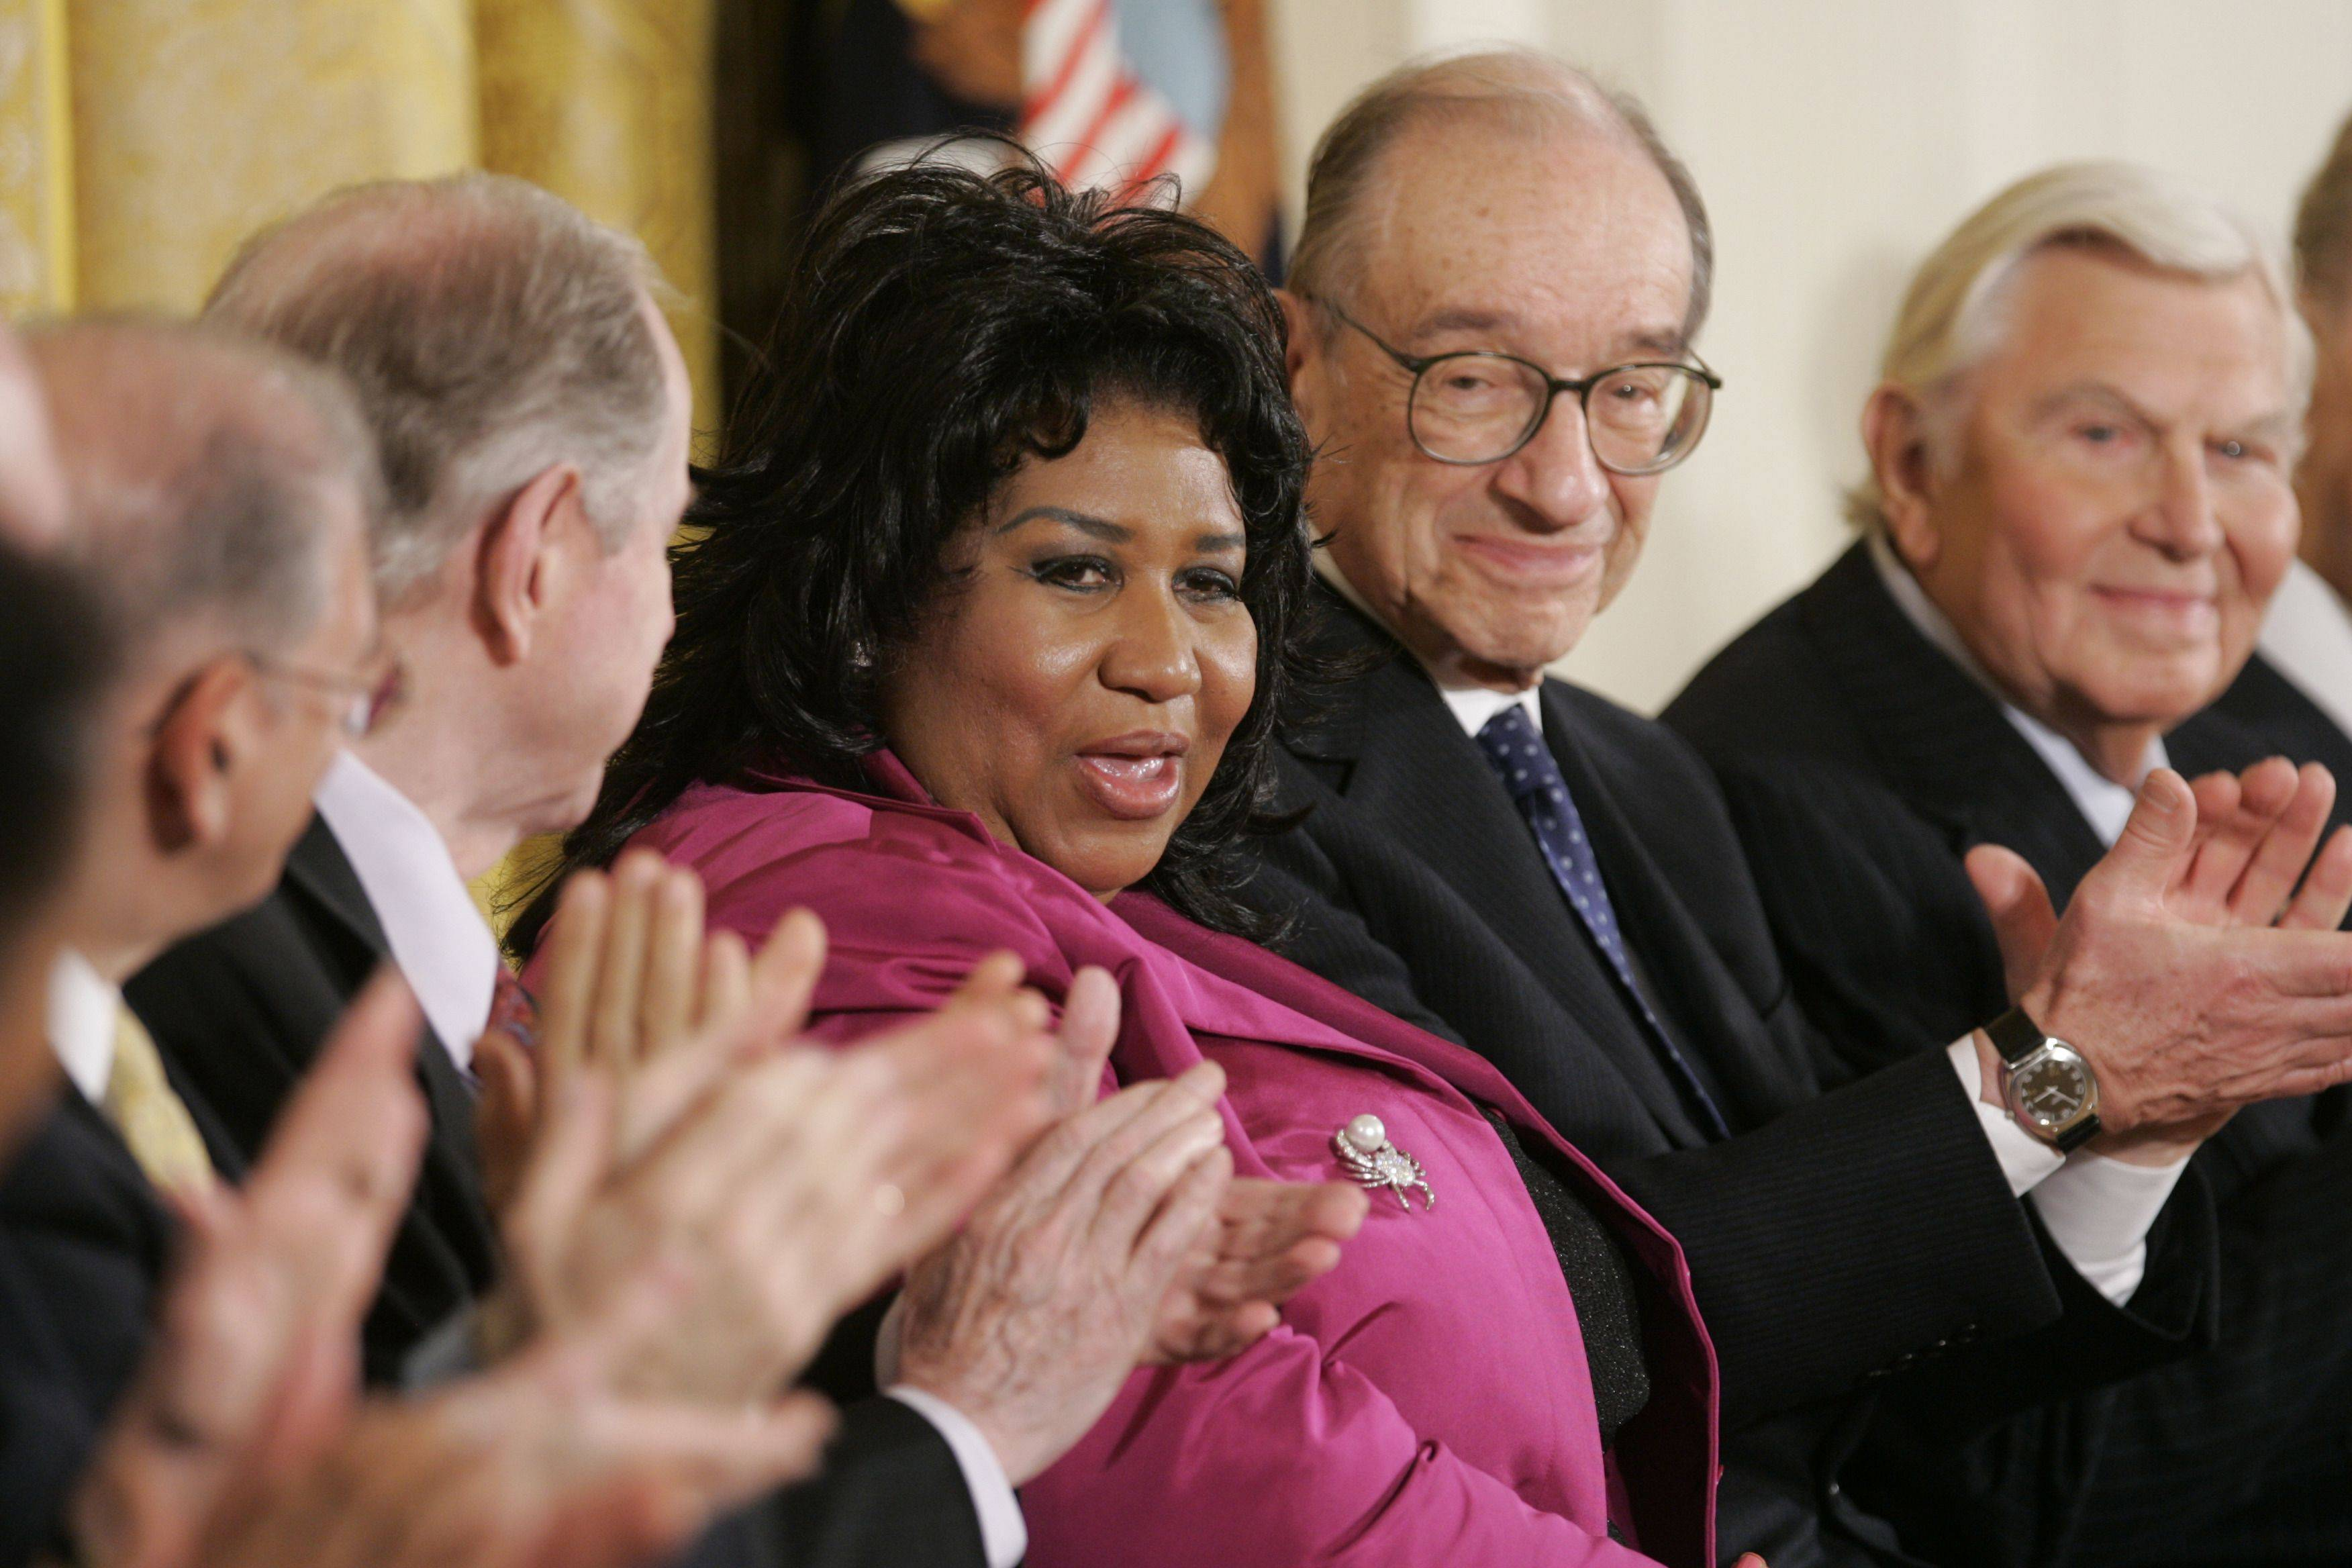 Soul singer Aretha Franklin, center, gets a round of applause after receiving the Presidential Medal of Freedom Award in the East Room of the White House, Wednesday, Nov. 9, 2005, in Washington. To the right is Federal Reserve chairman, Alan Greenspan, second from right, and actor Andy Griffith who were also recipients of the award.